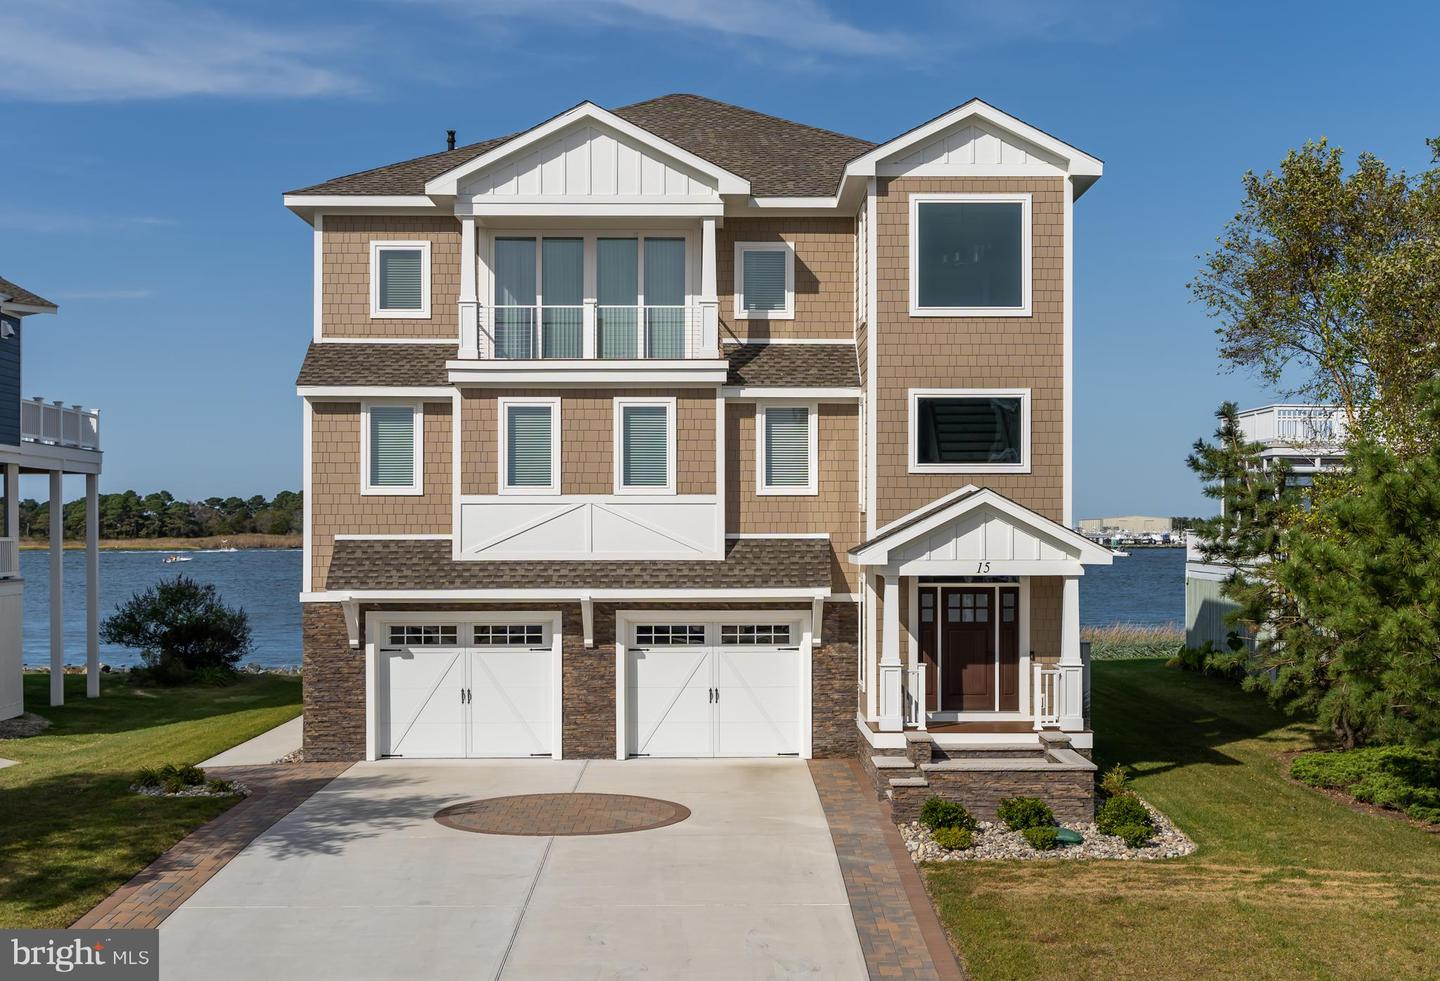 15 S. Shore Drive   - Best of Northern Virginia Real Estate